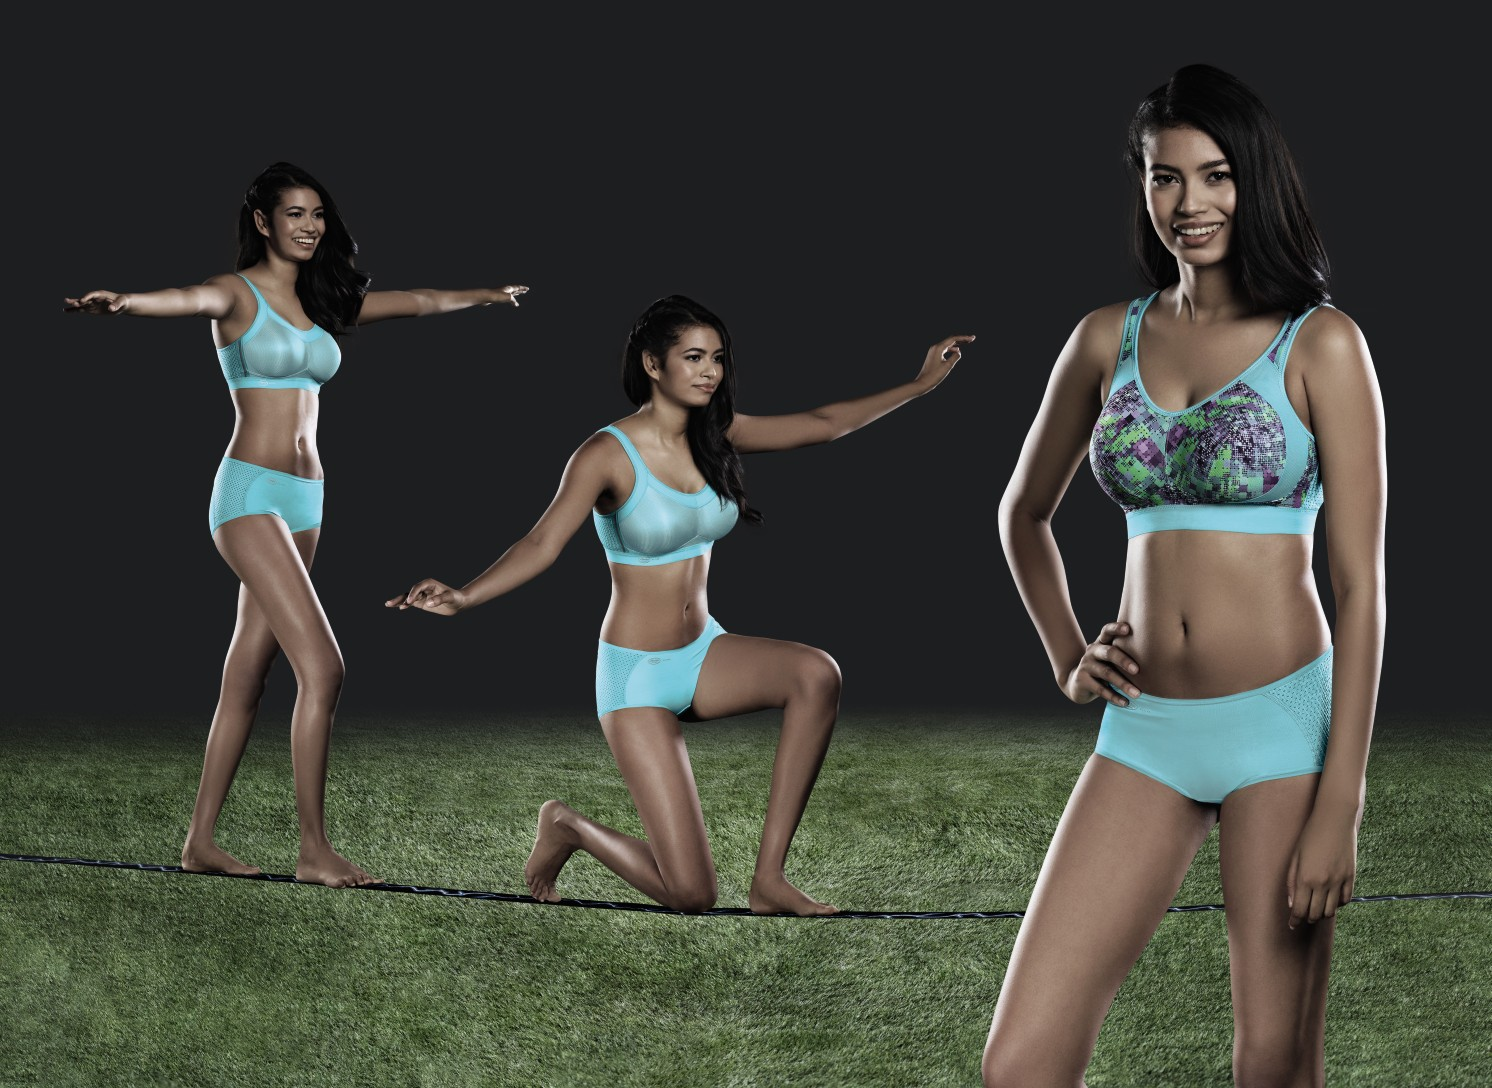 Colourful sports bras with high support from Anita active